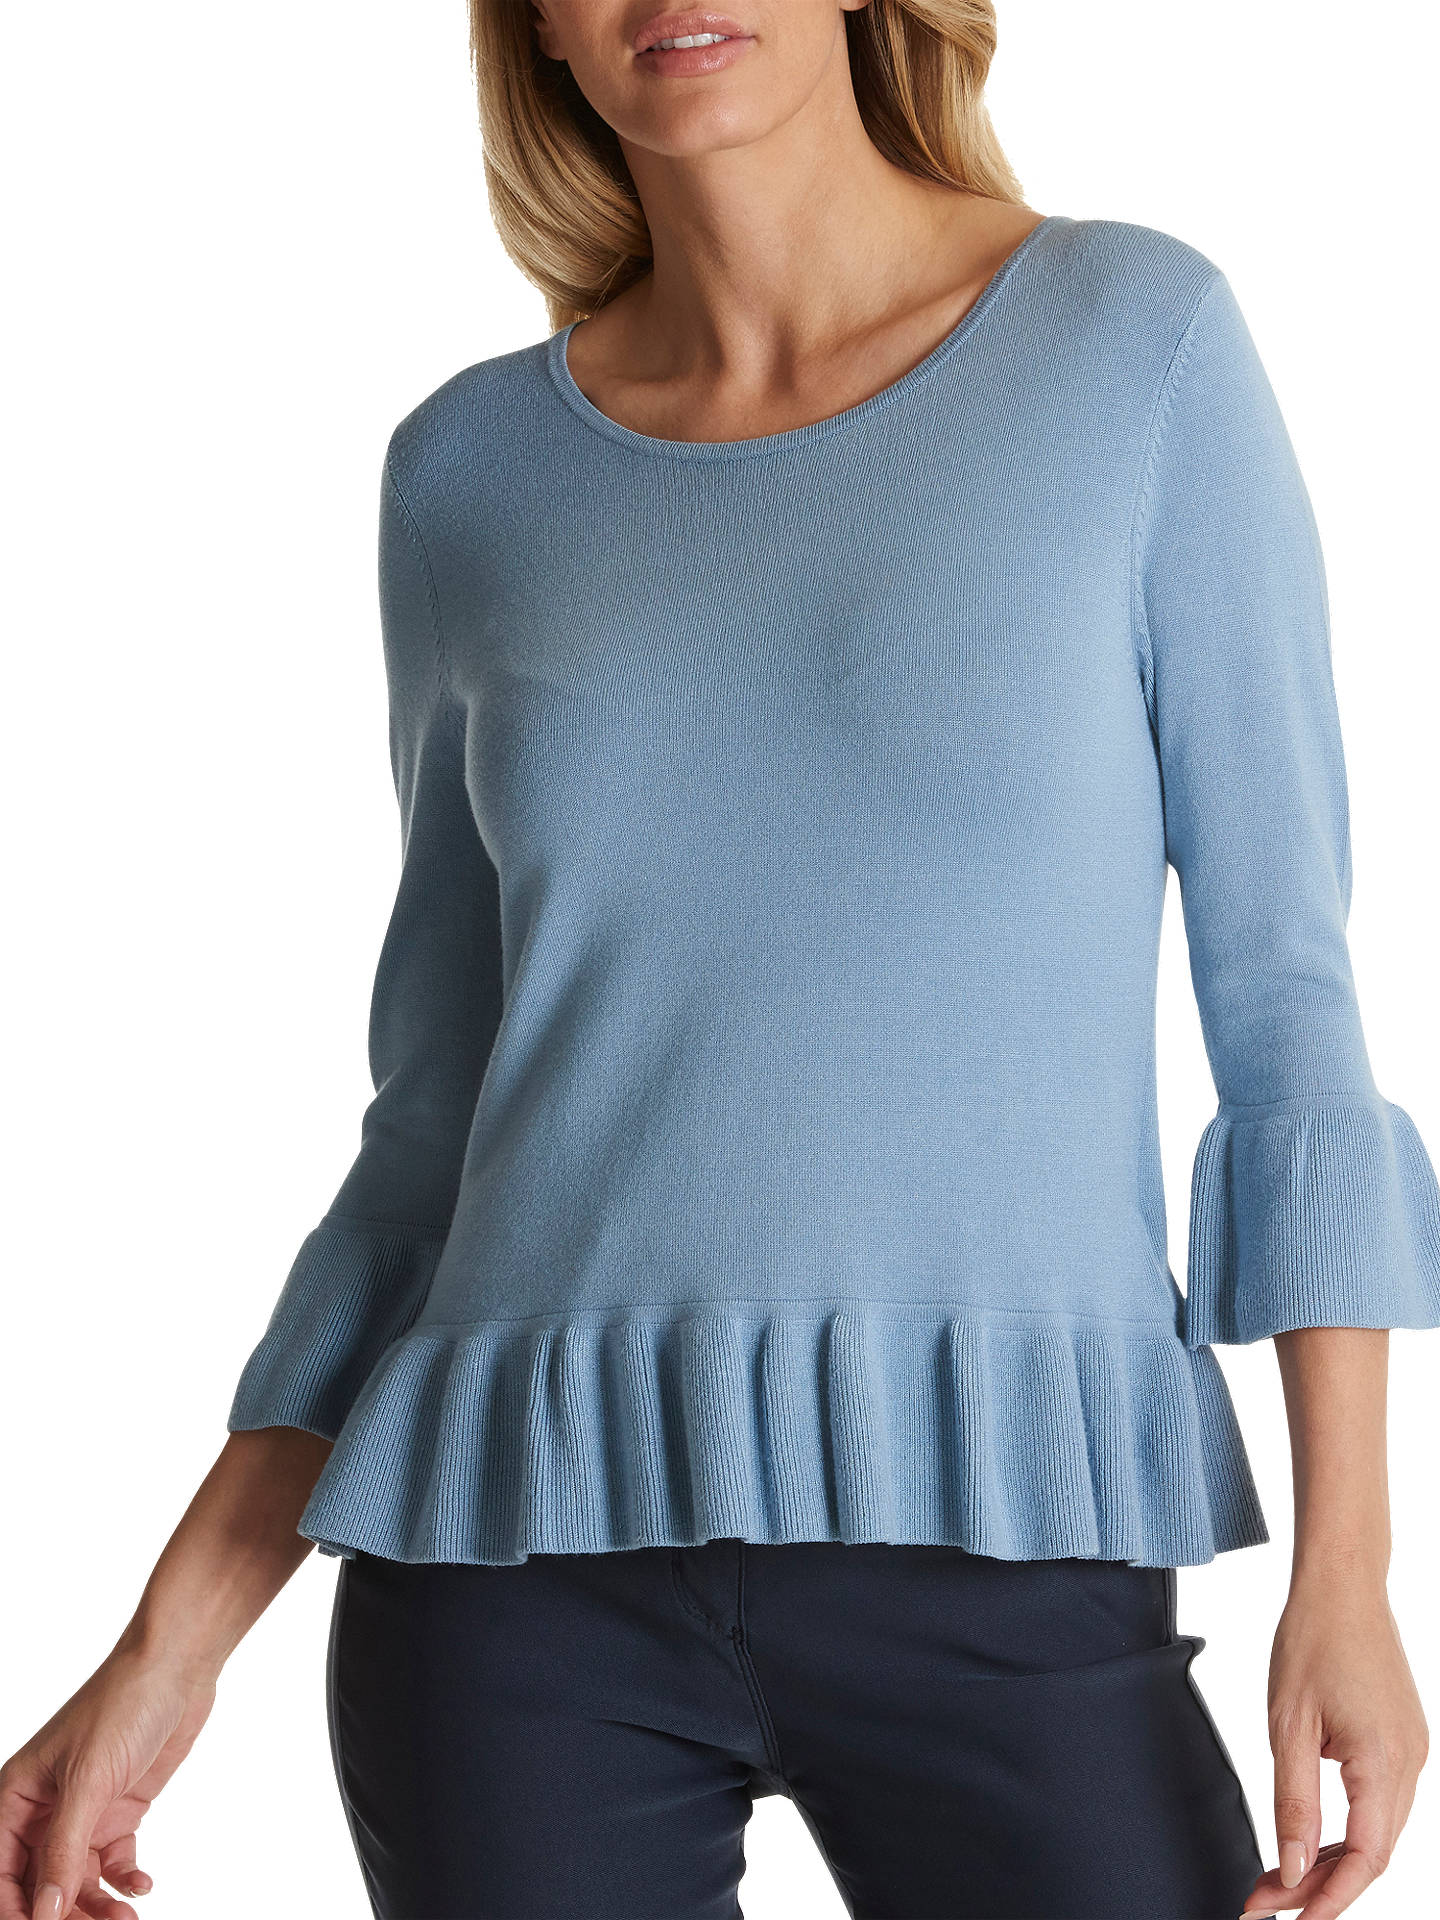 BuyBetty Barclay Fine Knit Frilled Jumper, Dusty Blue, 10 Online at johnlewis.com